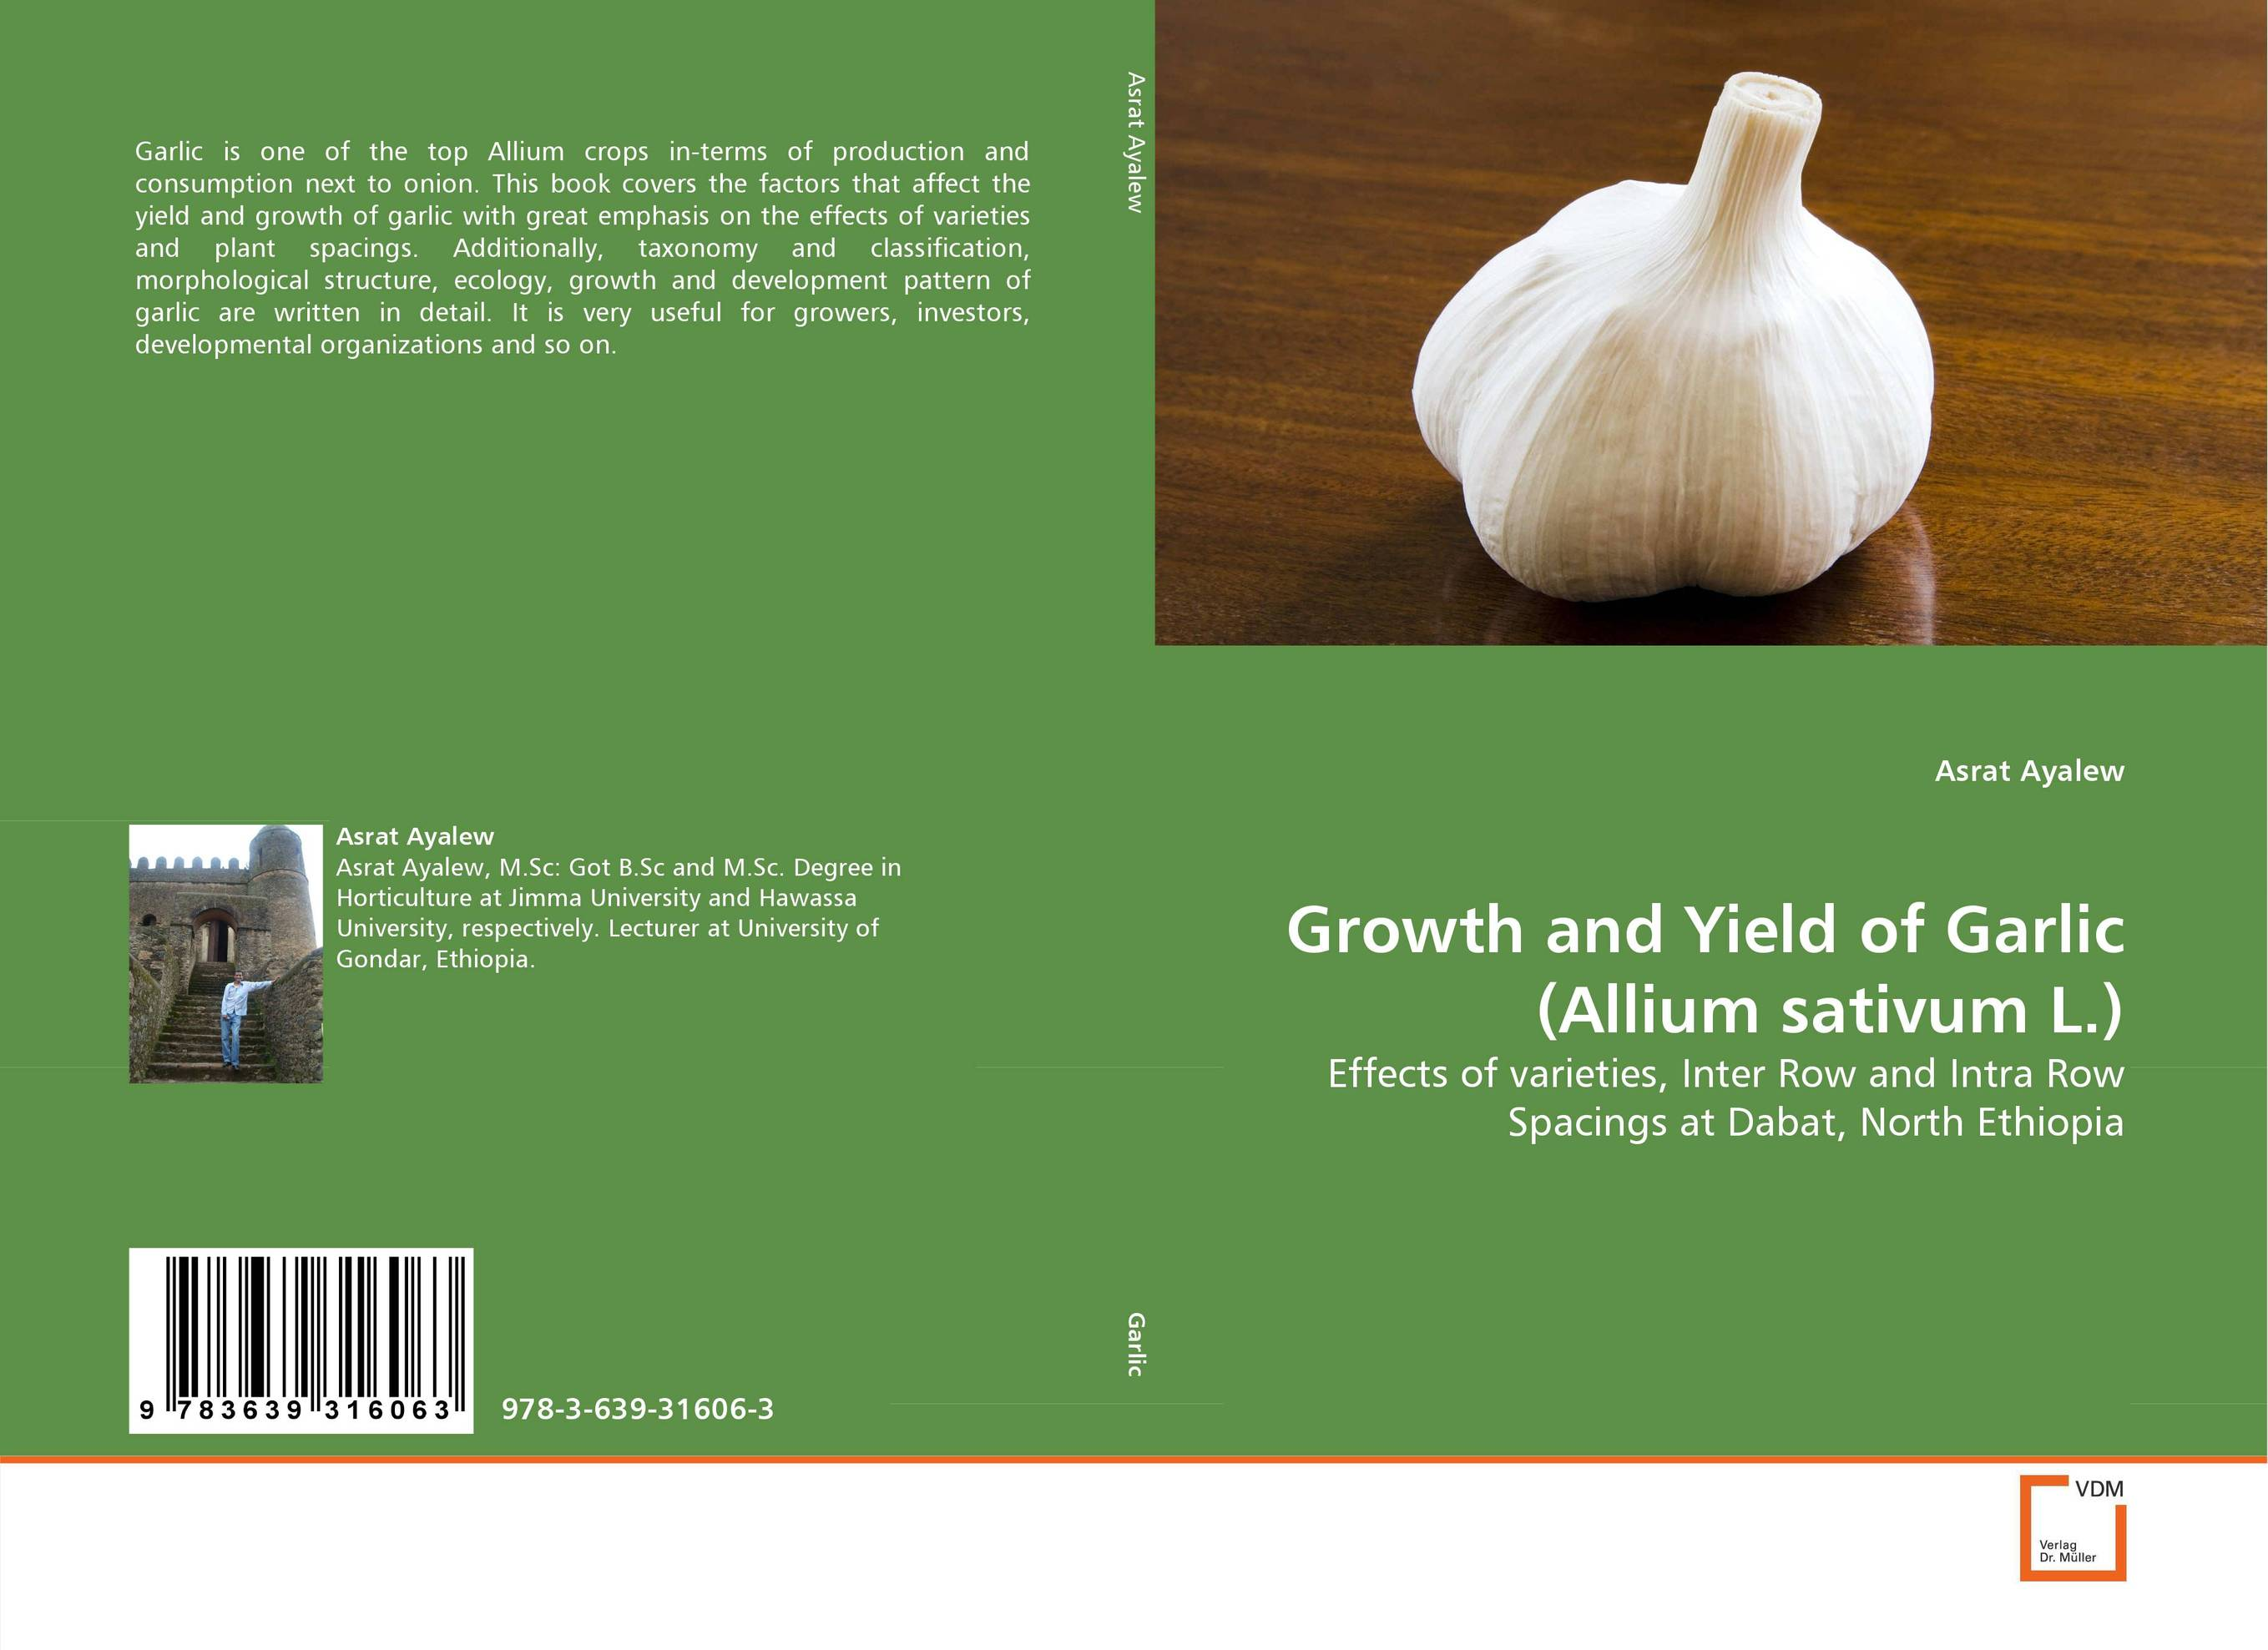 Growth and Yield of Garlic (Allium sativum L.) plant taxonomy and systematics